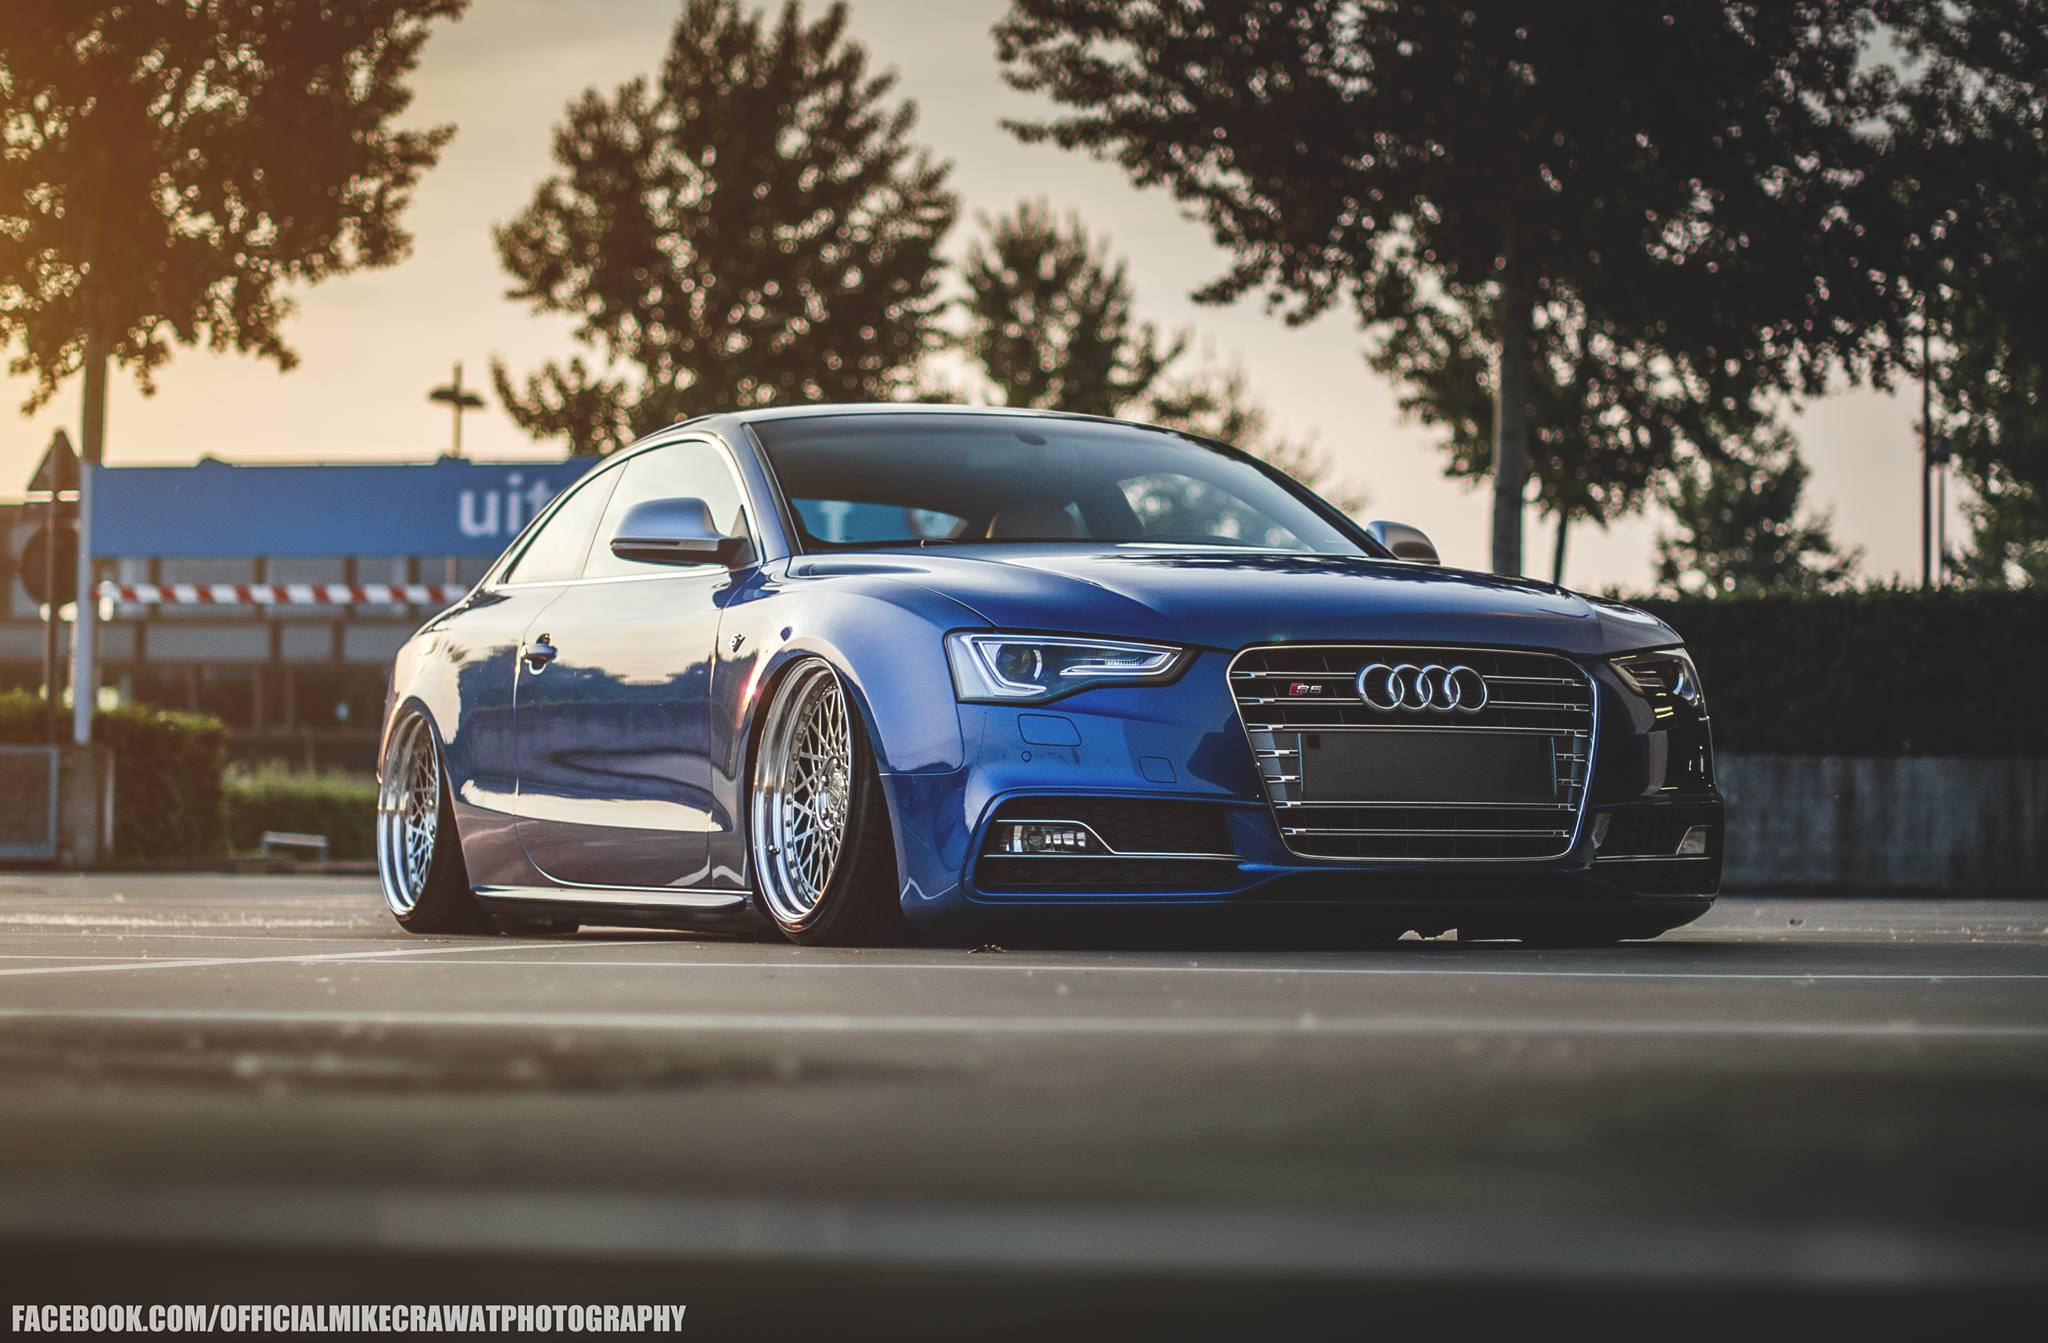 Audi Rs3 Wallpaper Hd Damn Girl Stancenation Form Gt Function